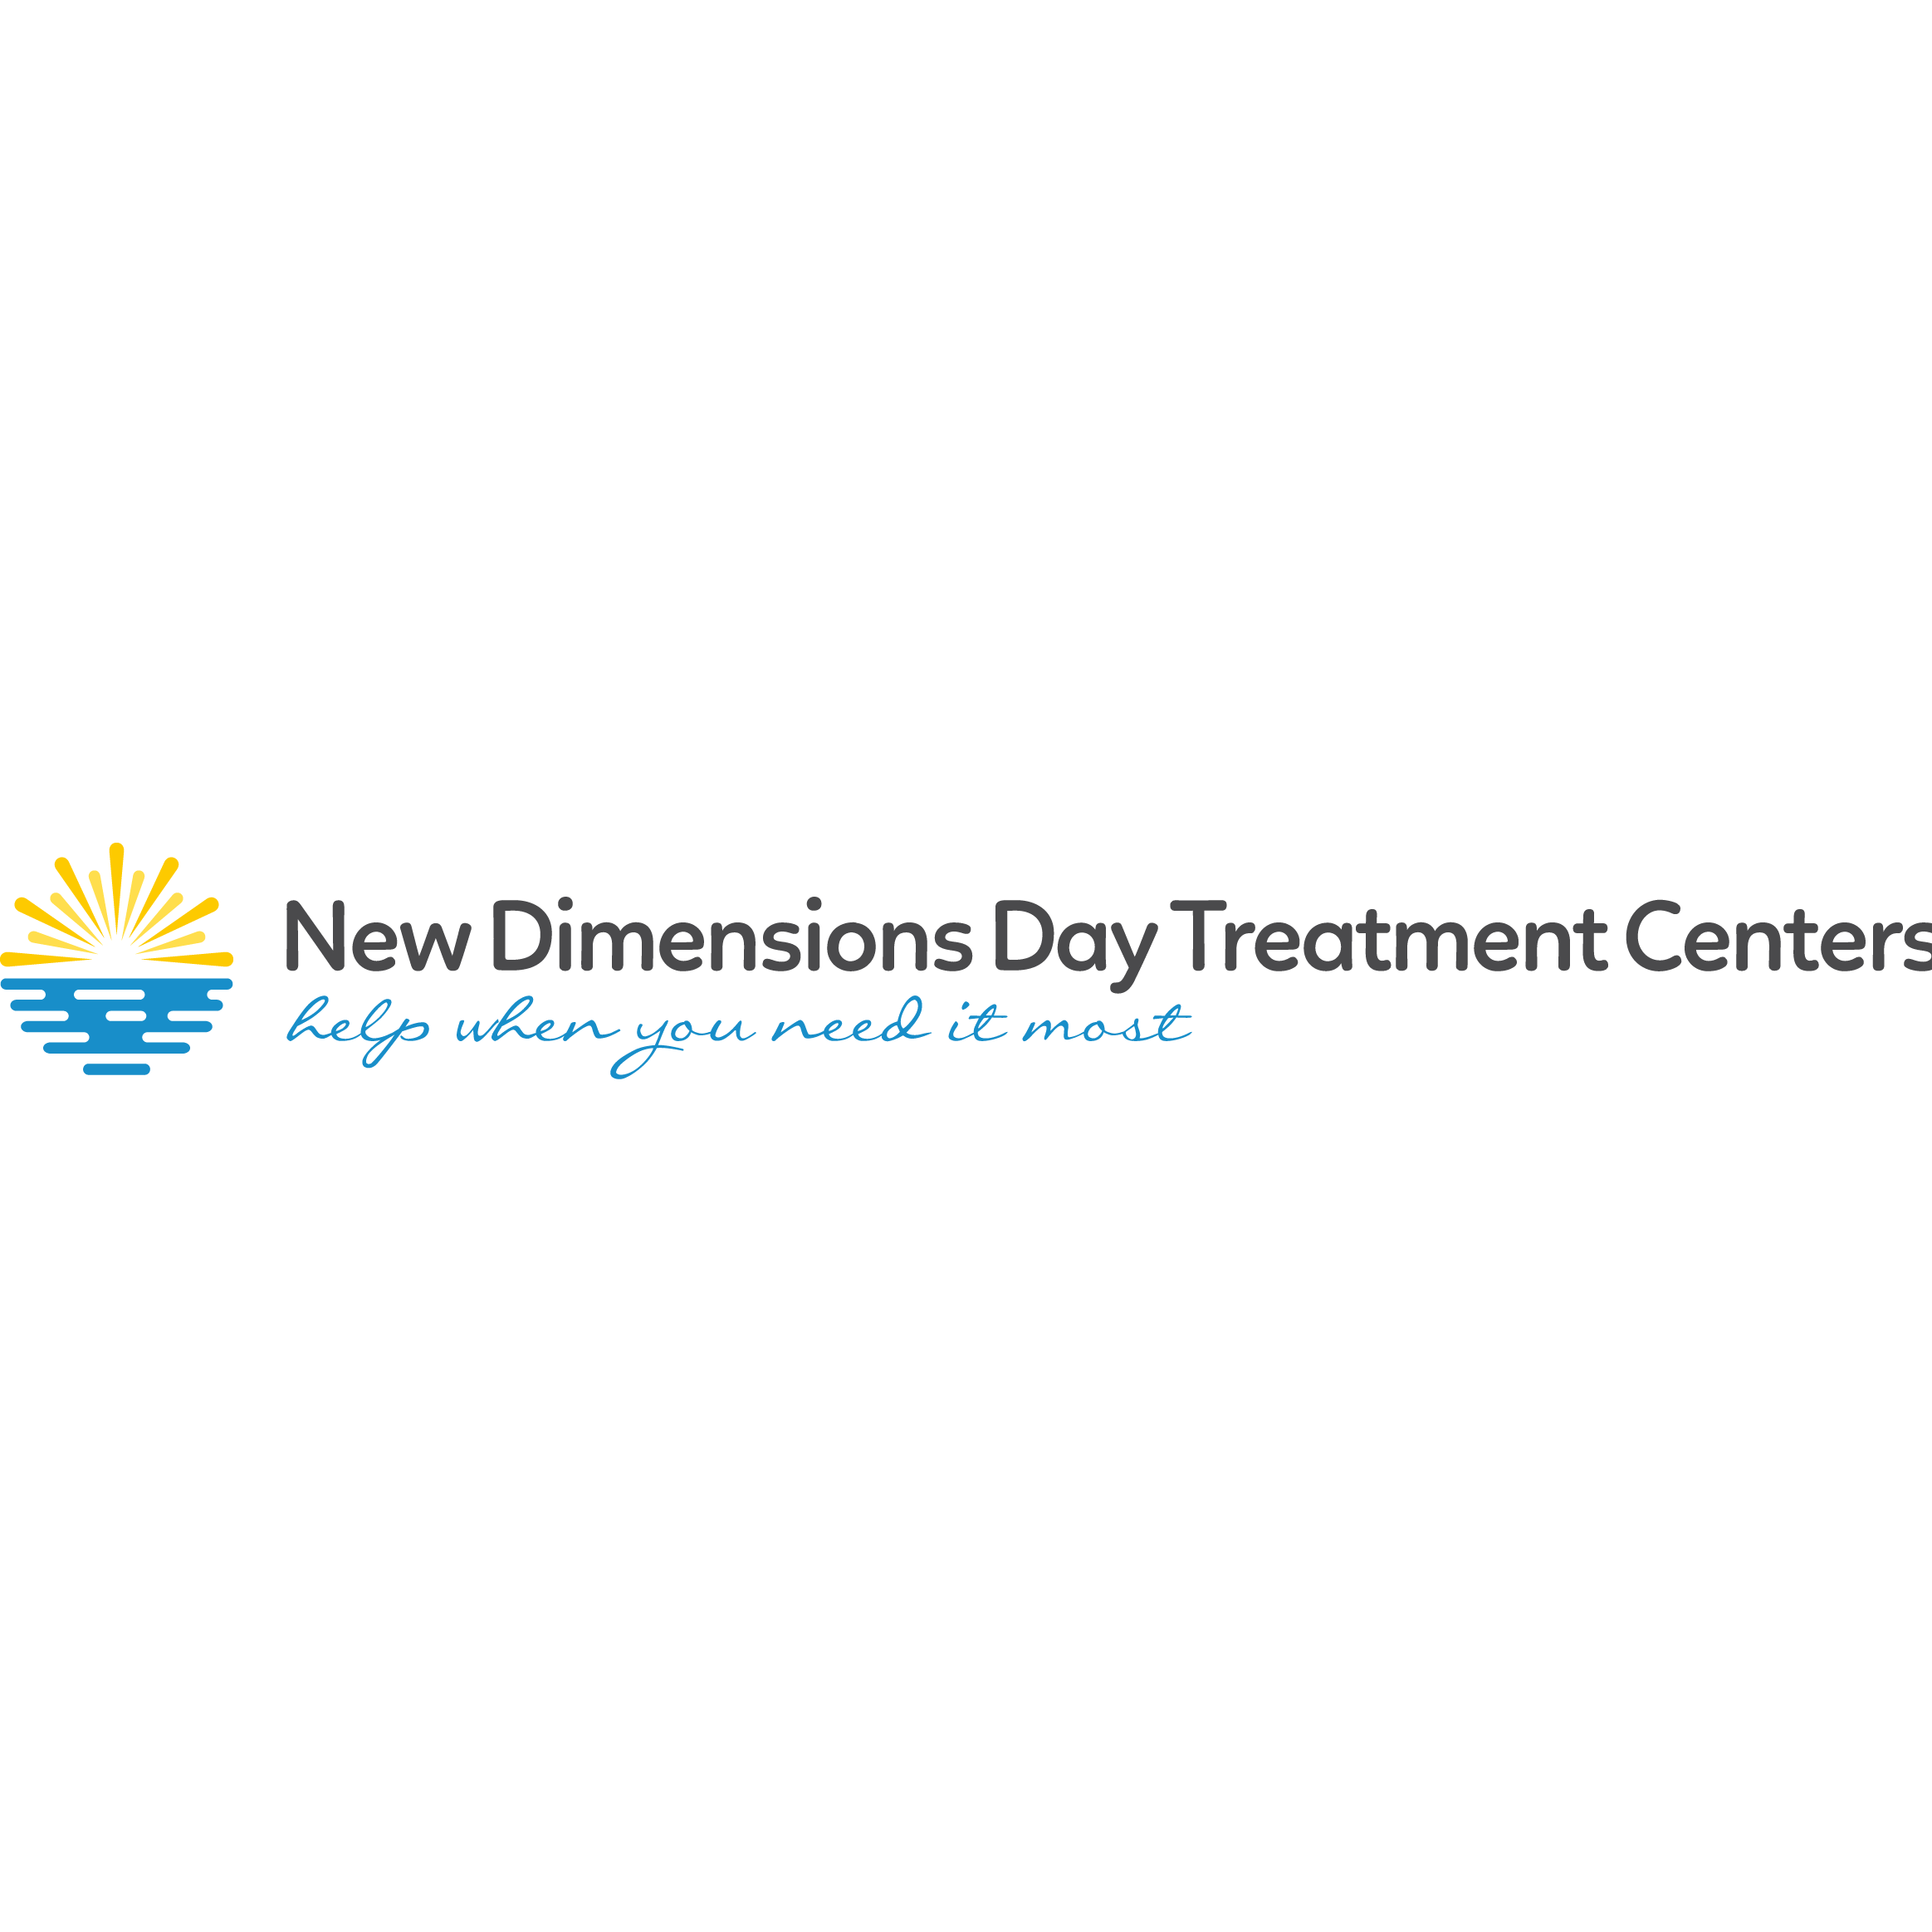 New Dimensions Day Treatment Centers Logo